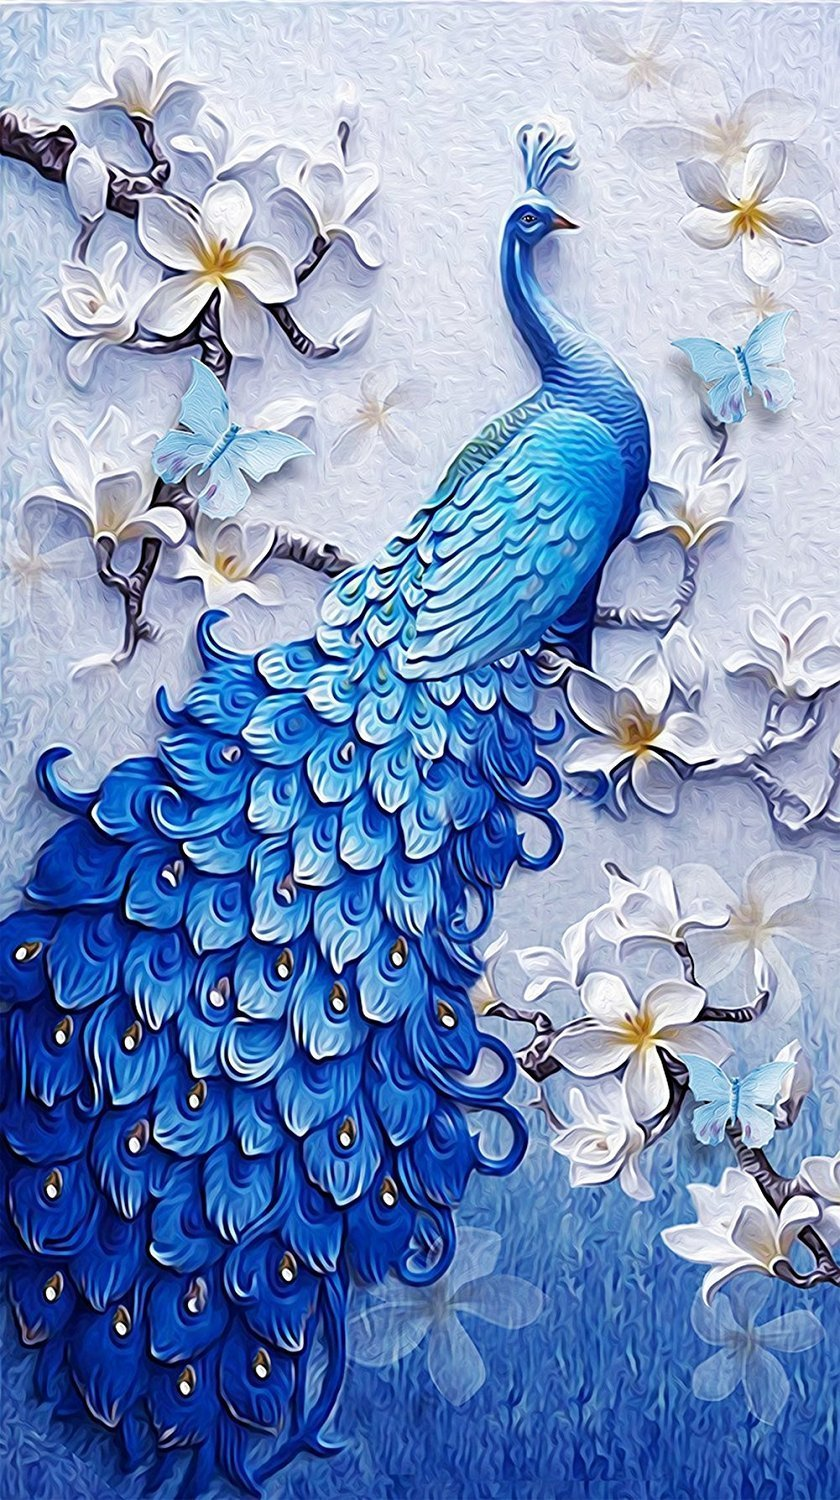 5D DIY Diamond Painting by Number Kits Full Drill Peacock Cross Stitch Wall Decor Crystals Arts Craft (A, 30x40cm) feilin